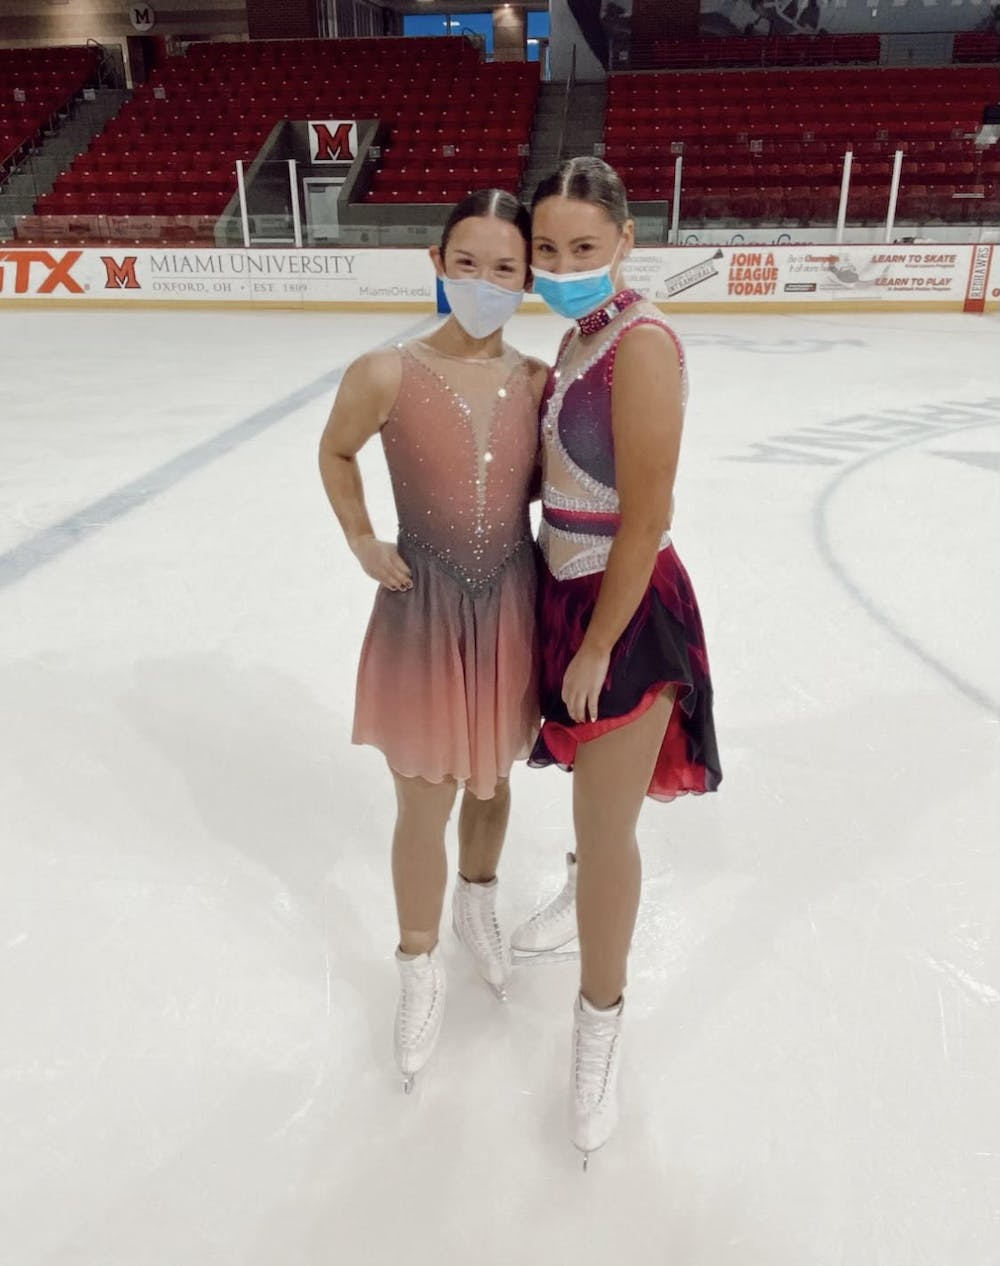 <p>First-years Sammie Levine (left) and Faith Tanis (right) hope to compete with the synchronized skating team next year after their season was canceled due to COVID-19.</p>